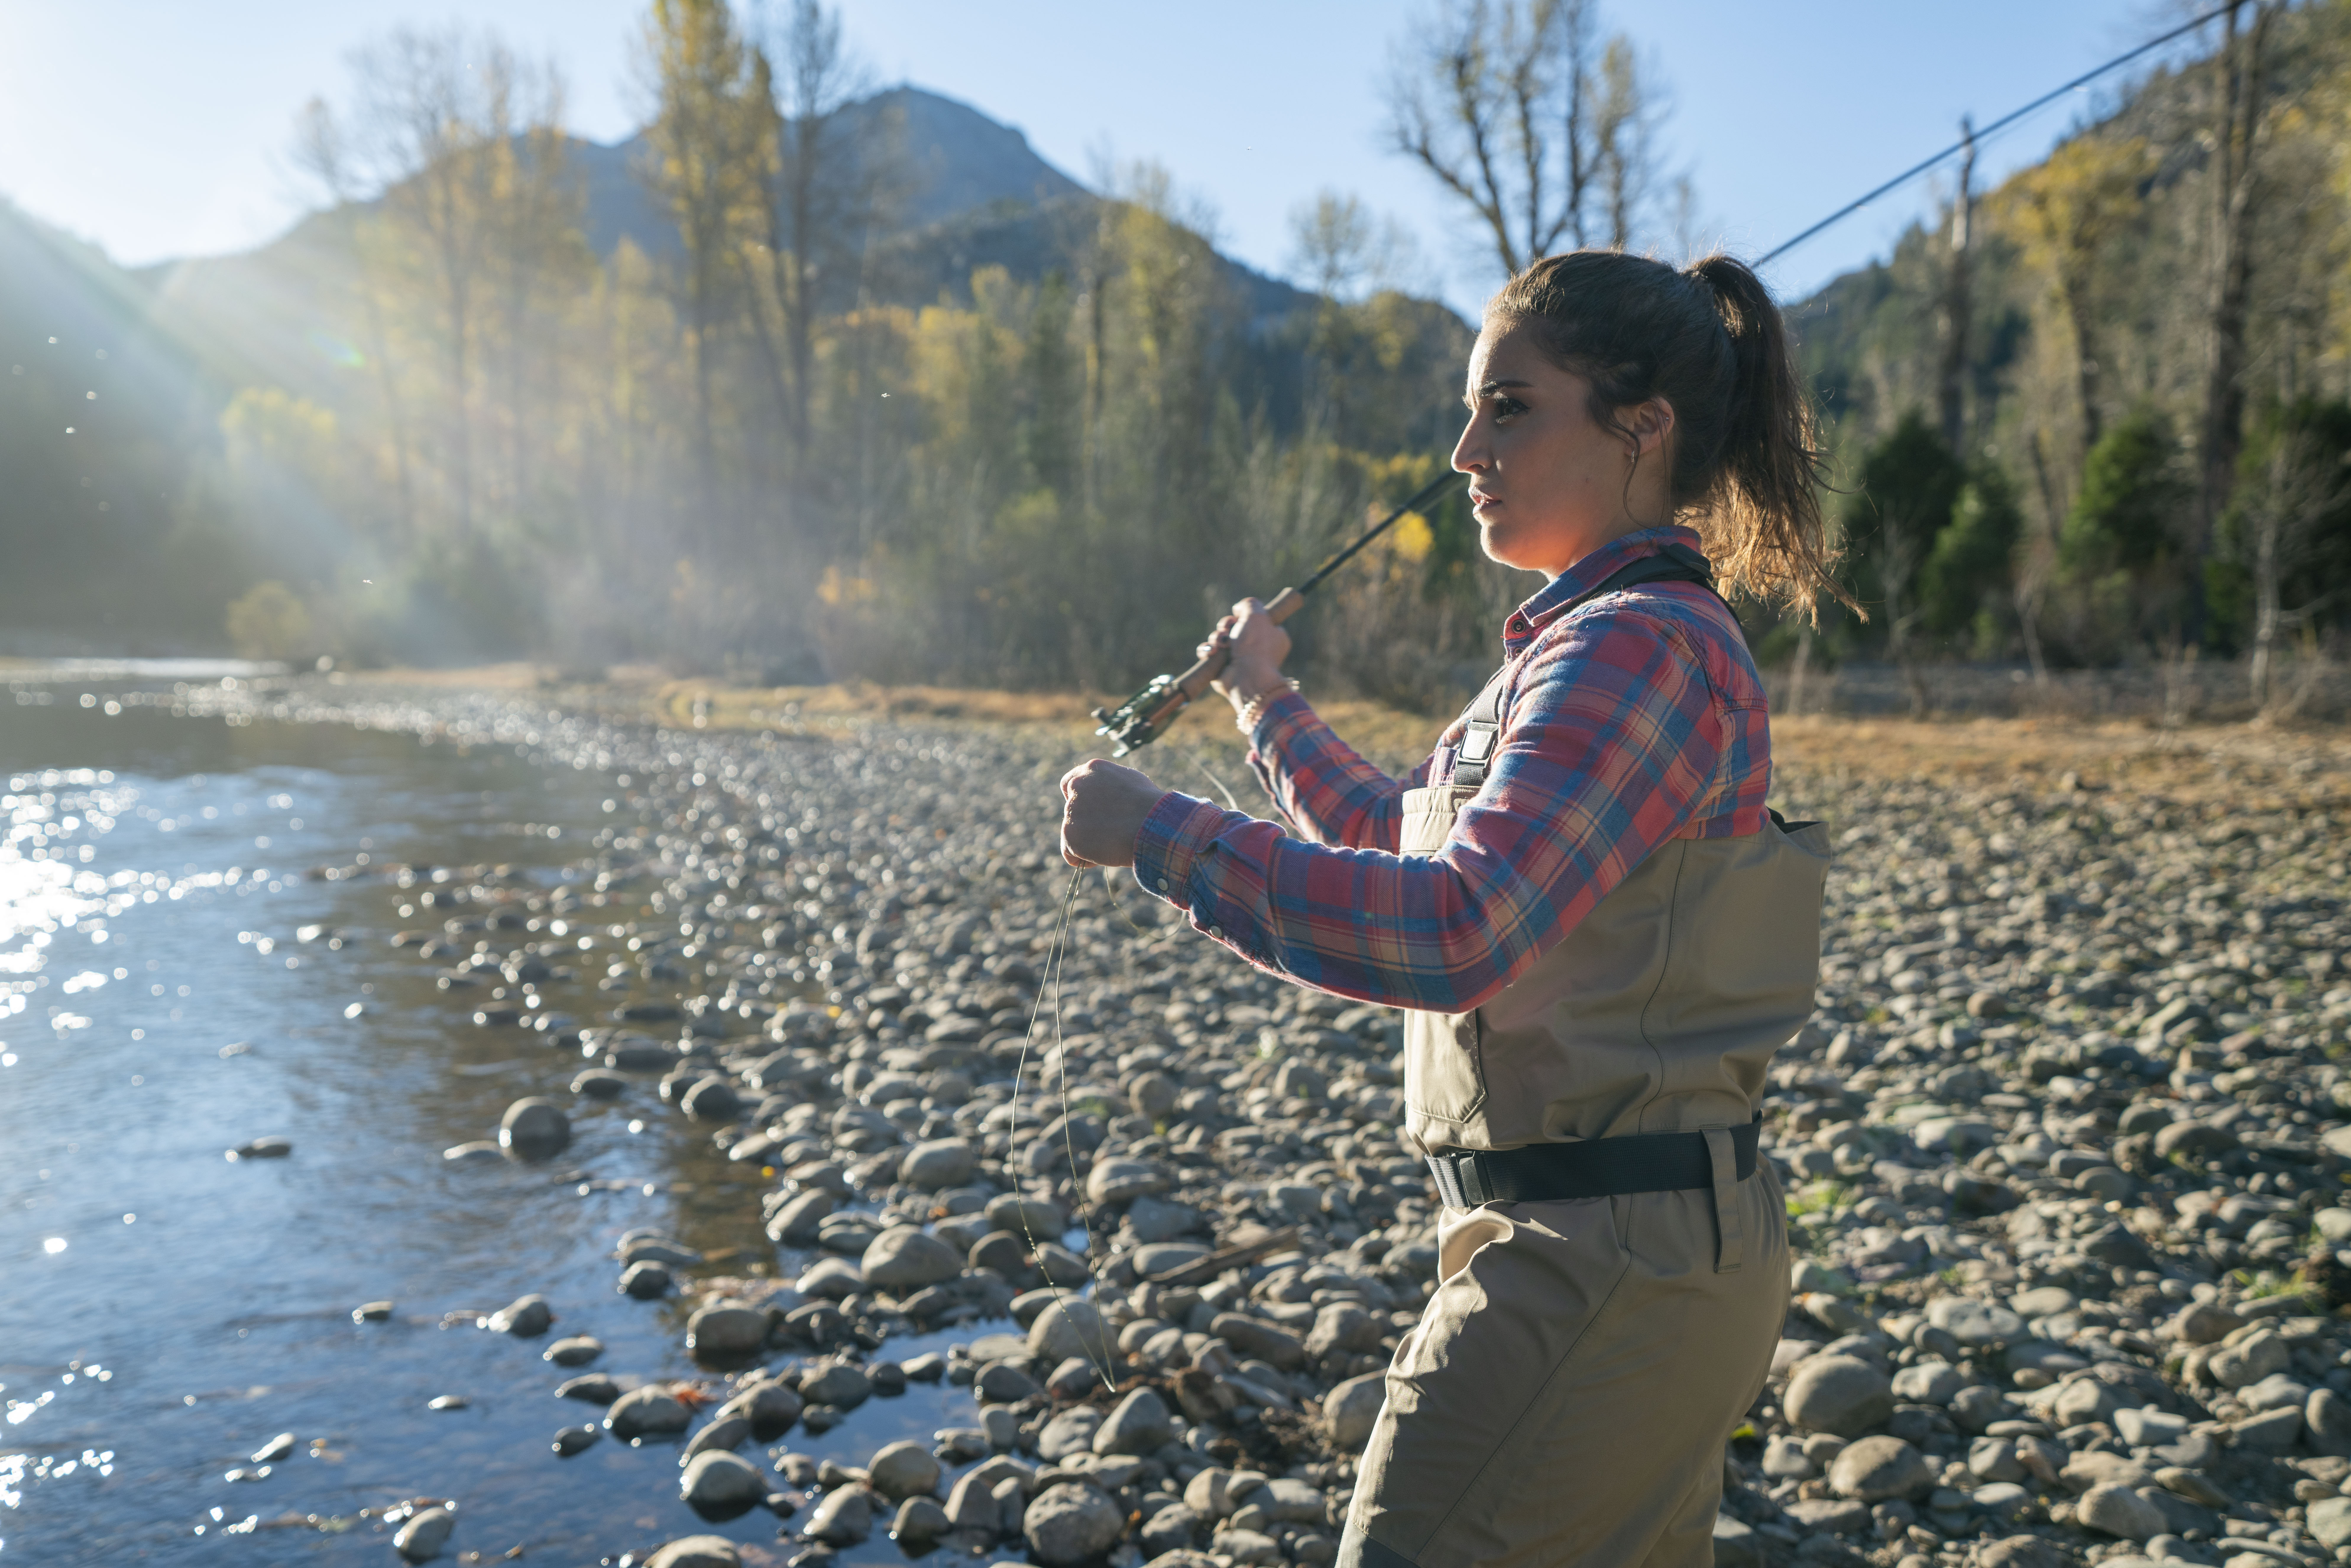 Fly-Fishing at Kennedy Meadows